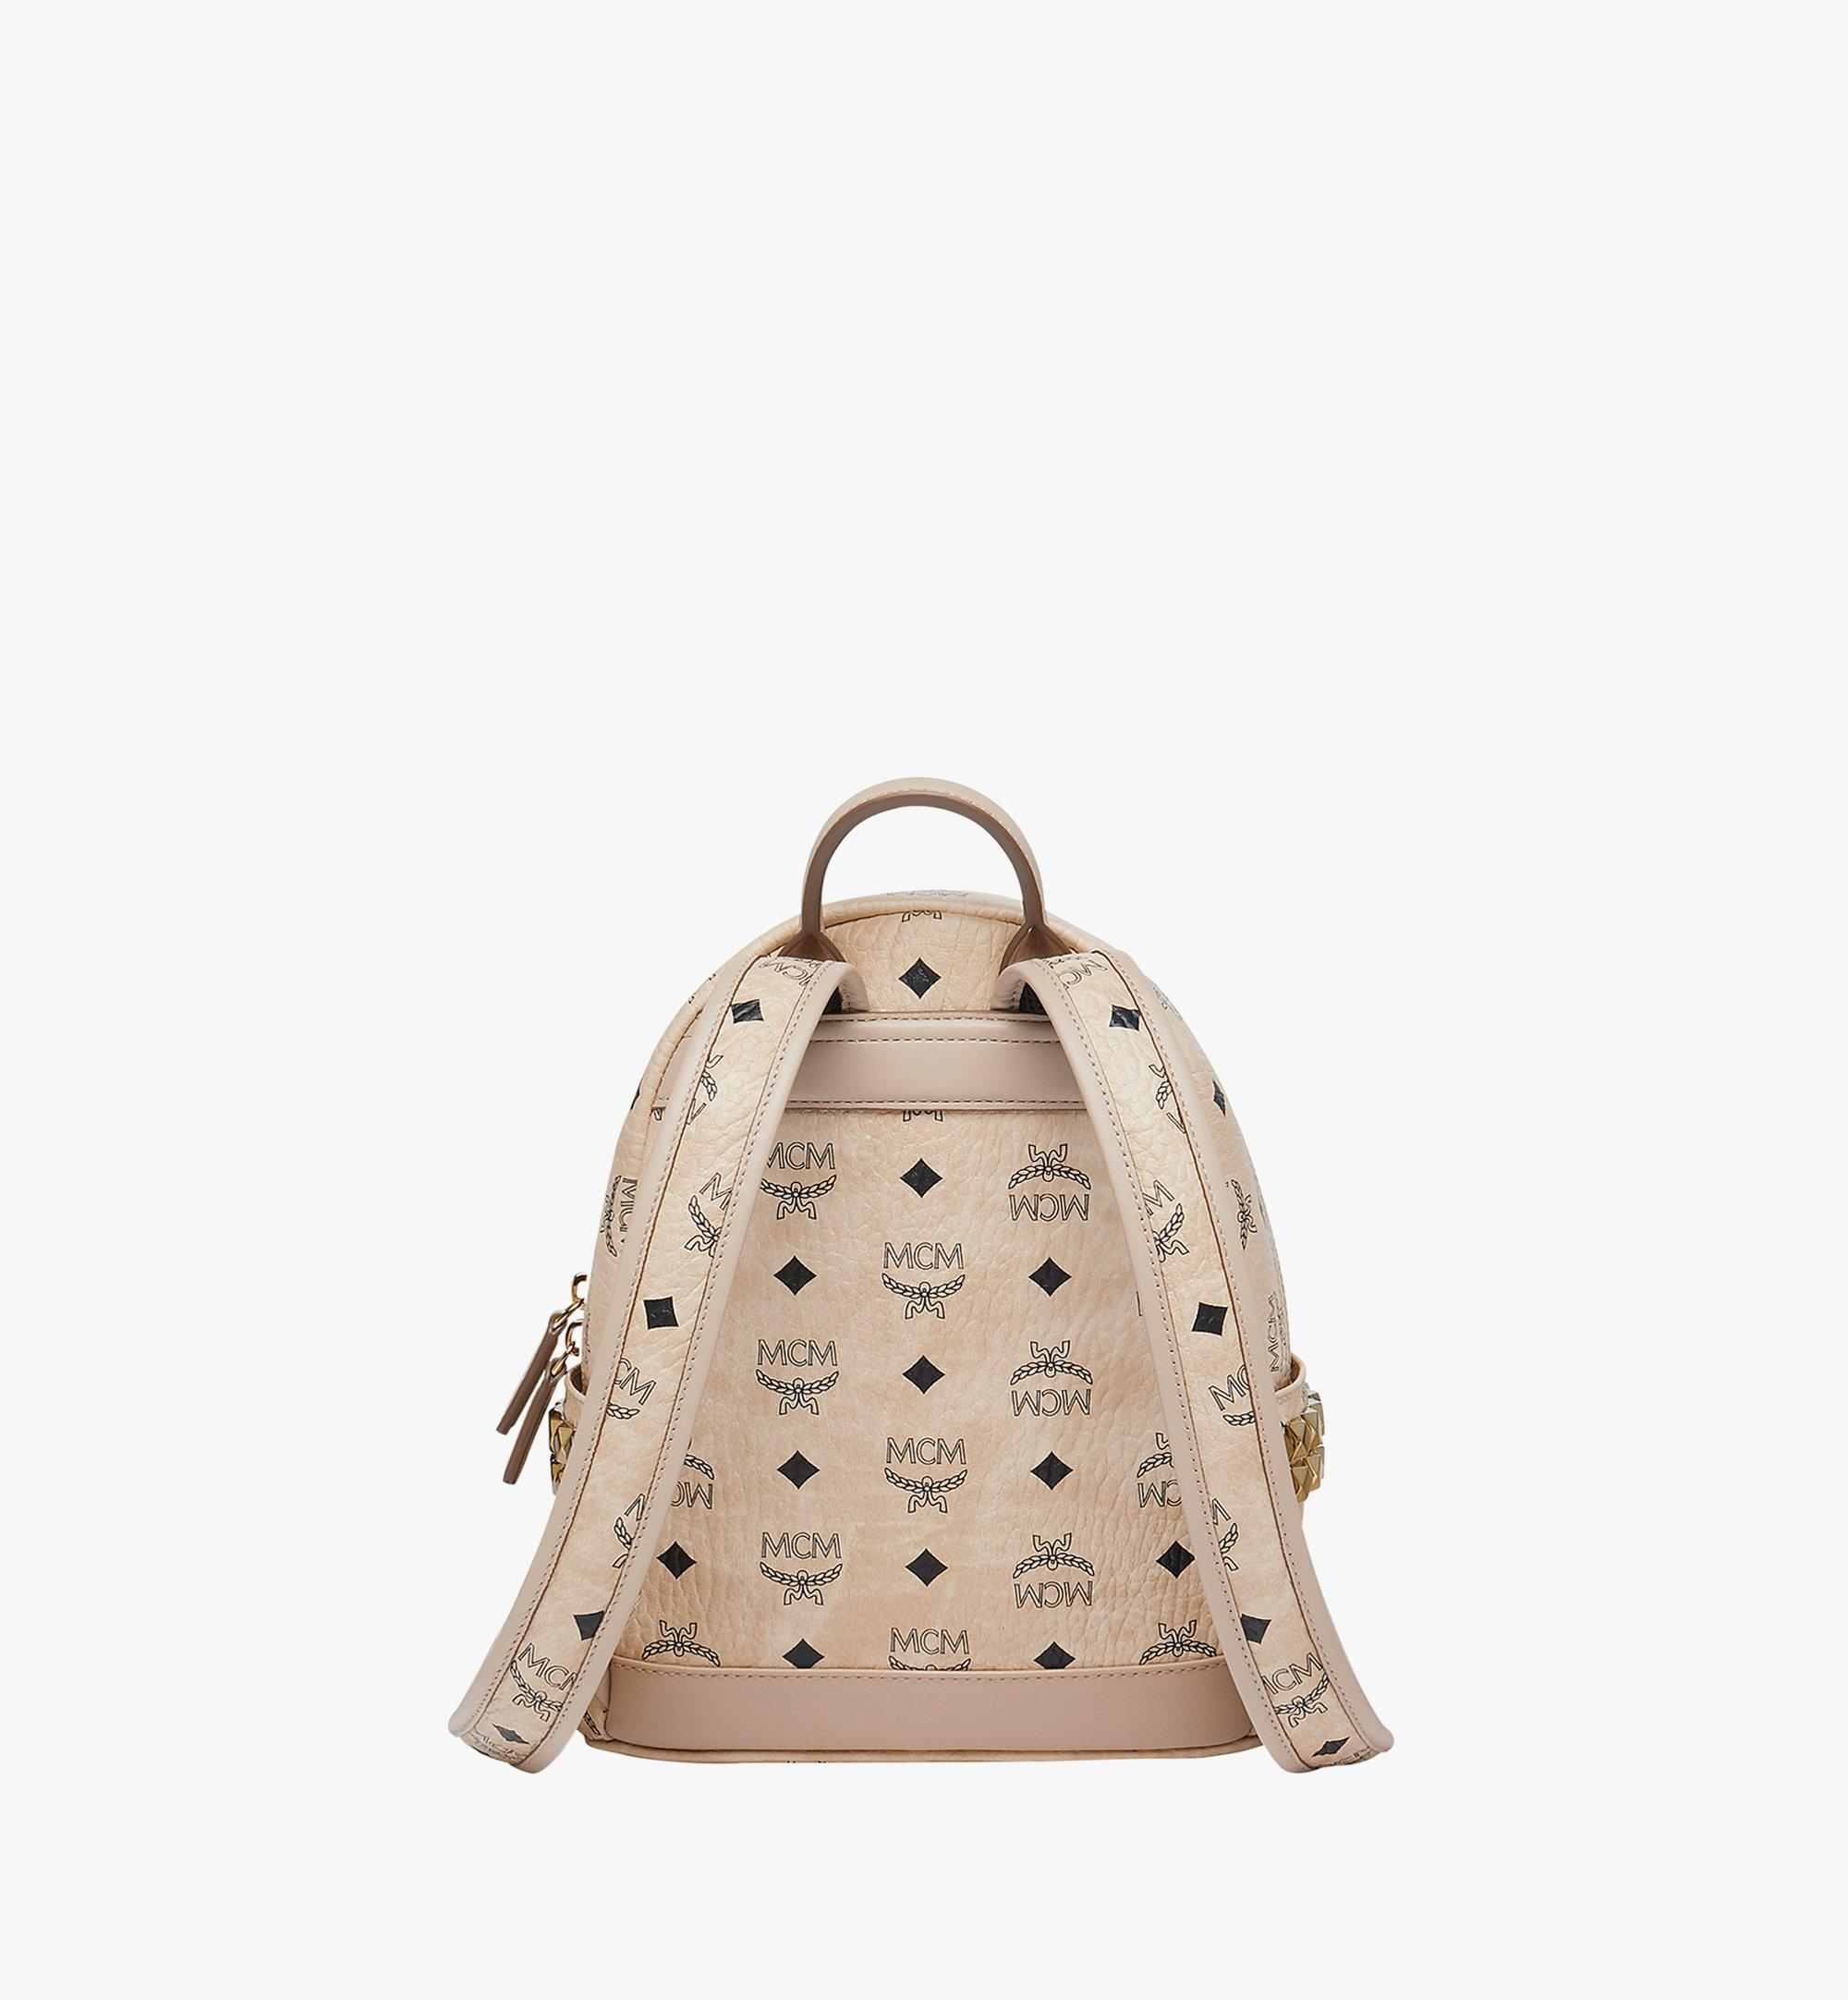 27 cm 10.5 in Stark Side Studs Backpack in Visetos Beige